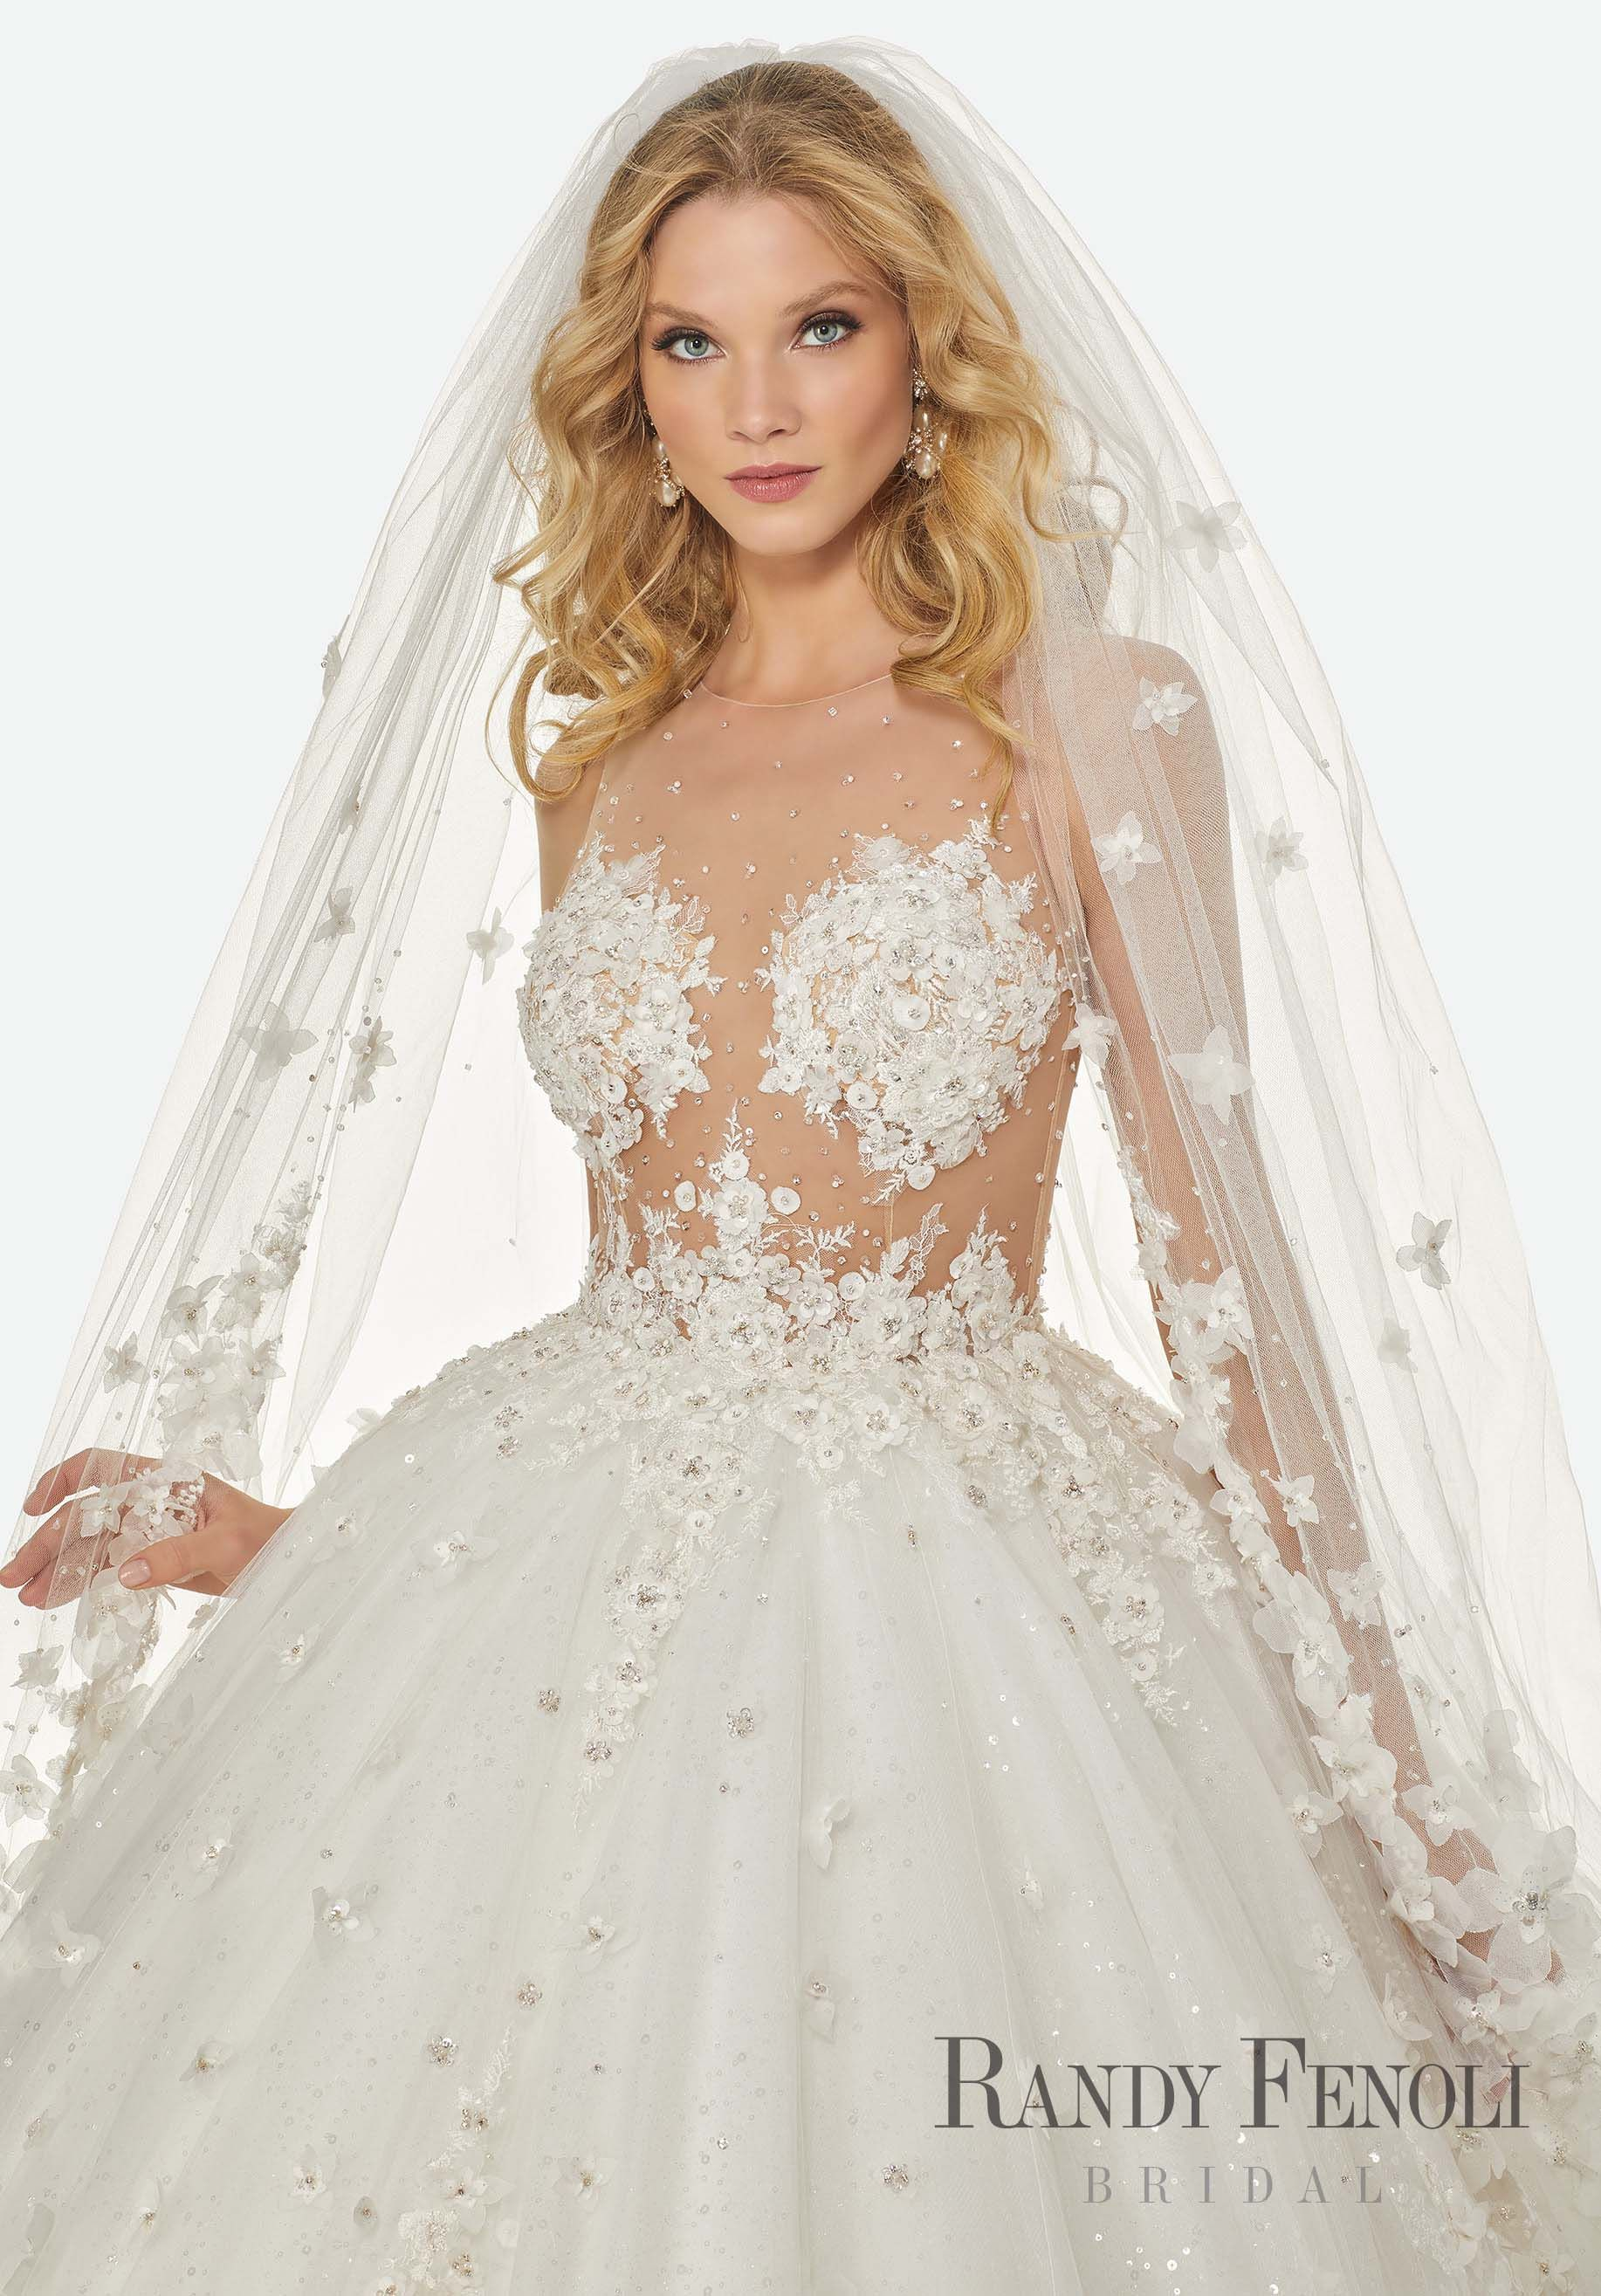 ba594bdcccafe Randy Fenoli Bridal, Brandi Wedding Dress | Style 3424. Diamante and  Crystal Beaded, Floral Appliqués and Embroidery on an Illusion Bodice with  Extra Full, ...